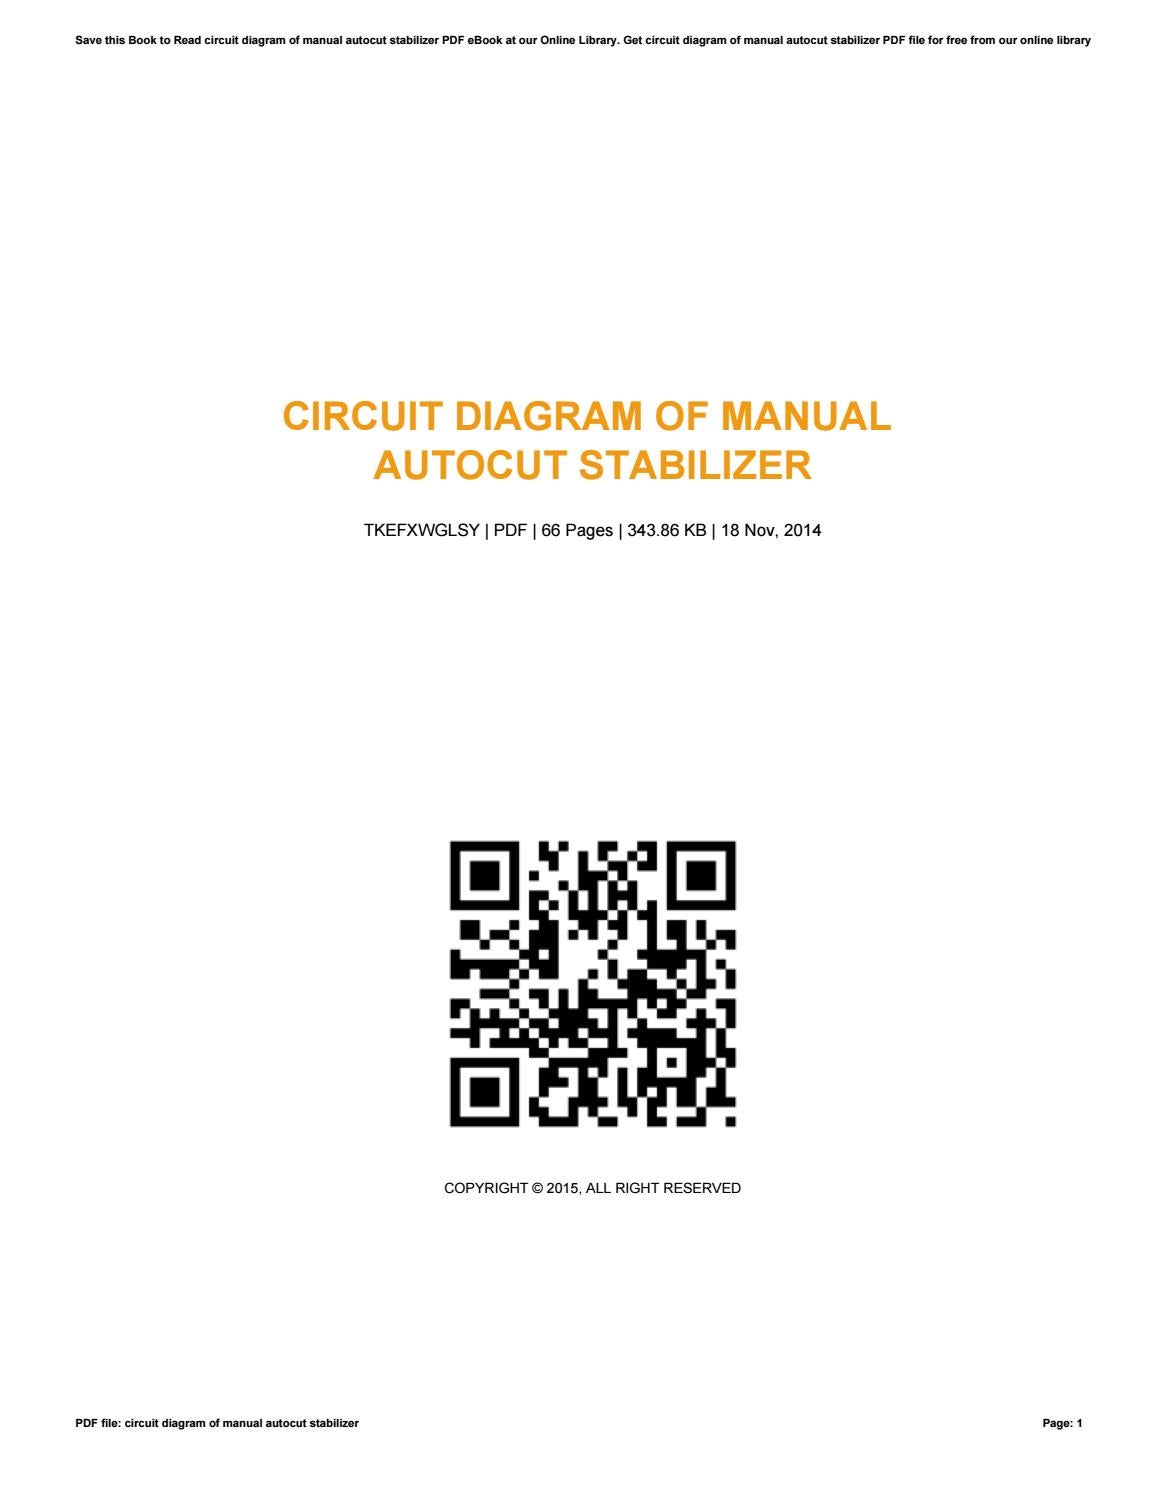 Stabilizer Circuit Diagram Pdf